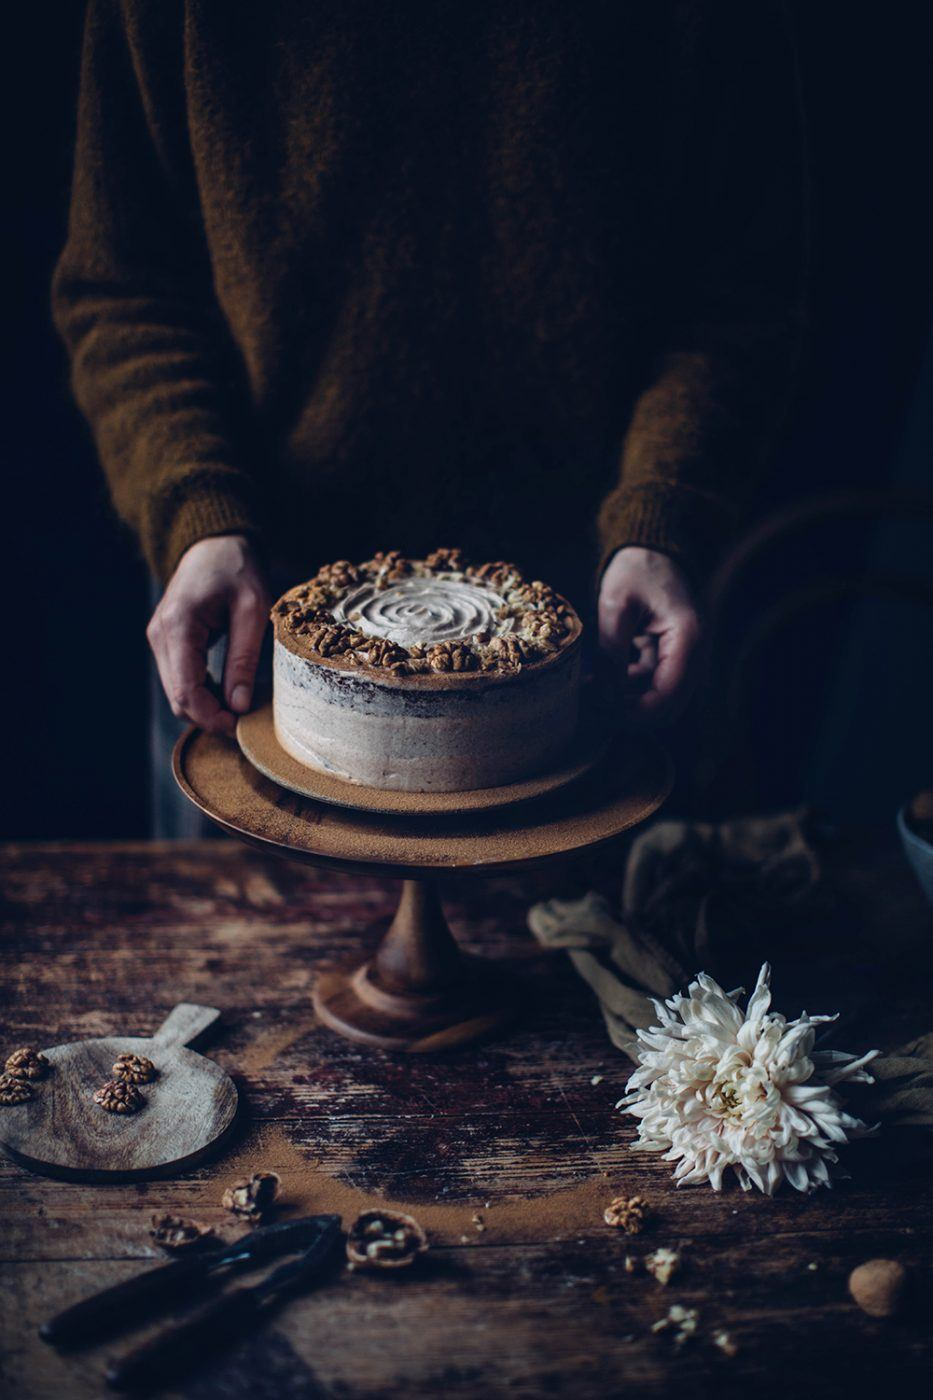 Image for Gluten-free Walnut Cake with Cinnamon – the perfect autumn recipe